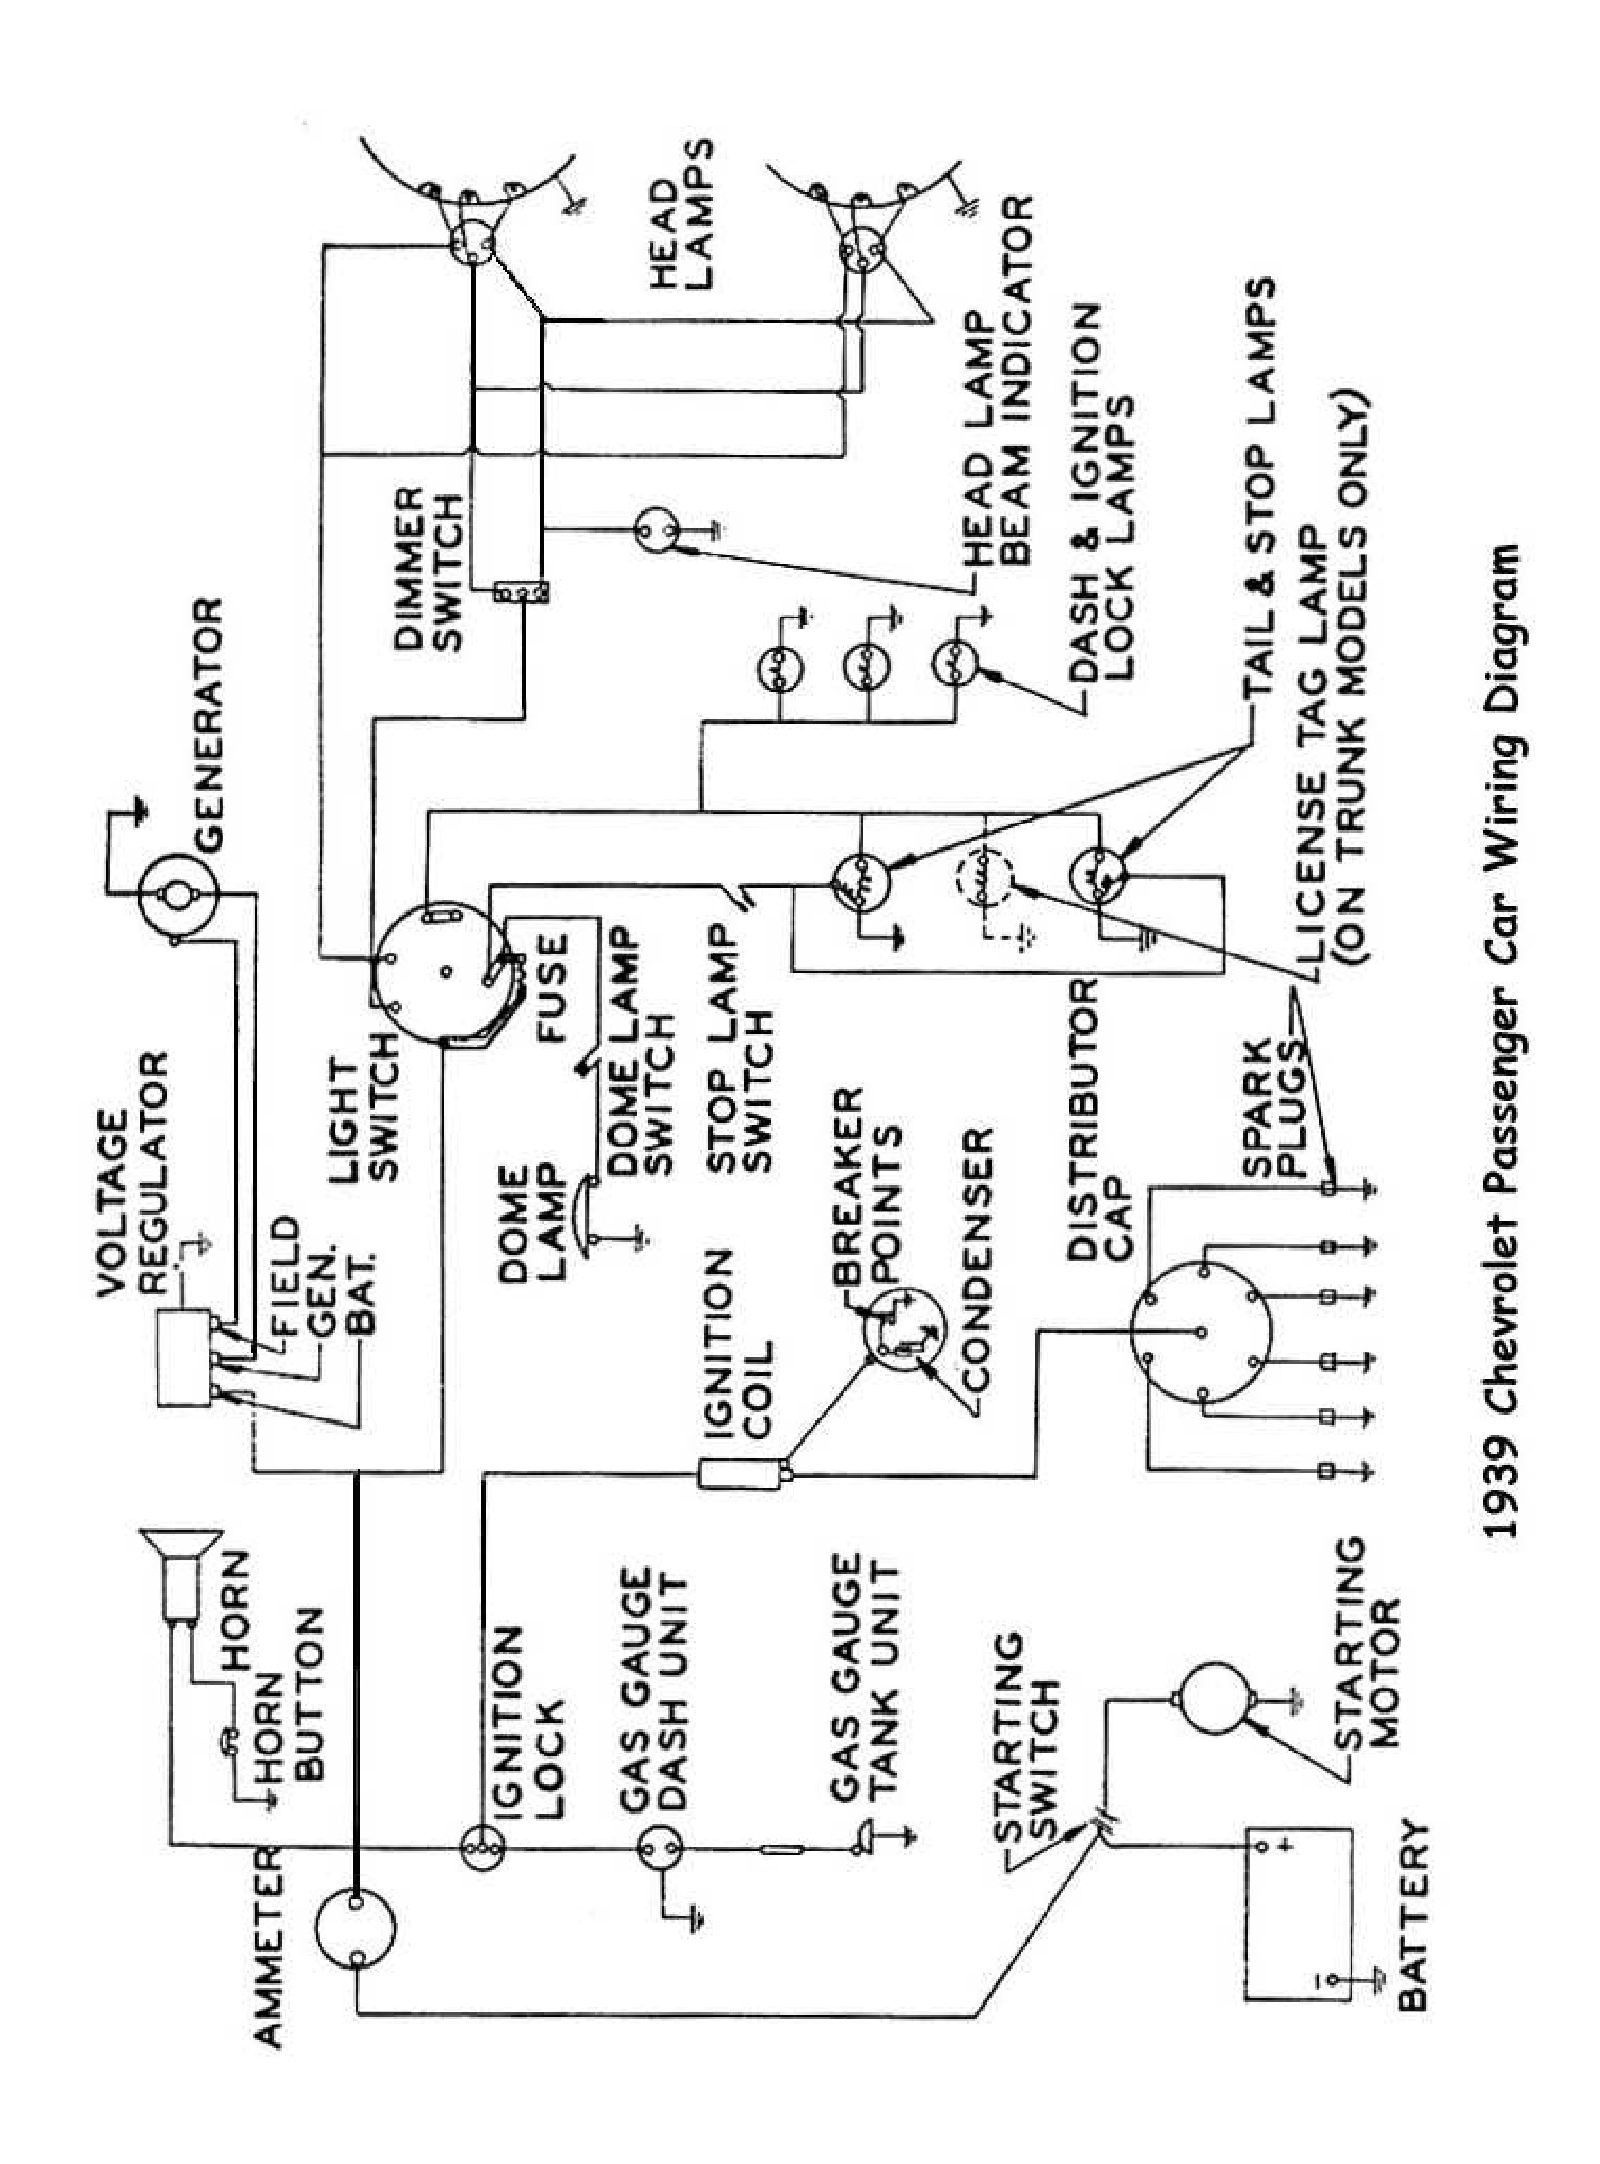 here are some wiring diagrams as well